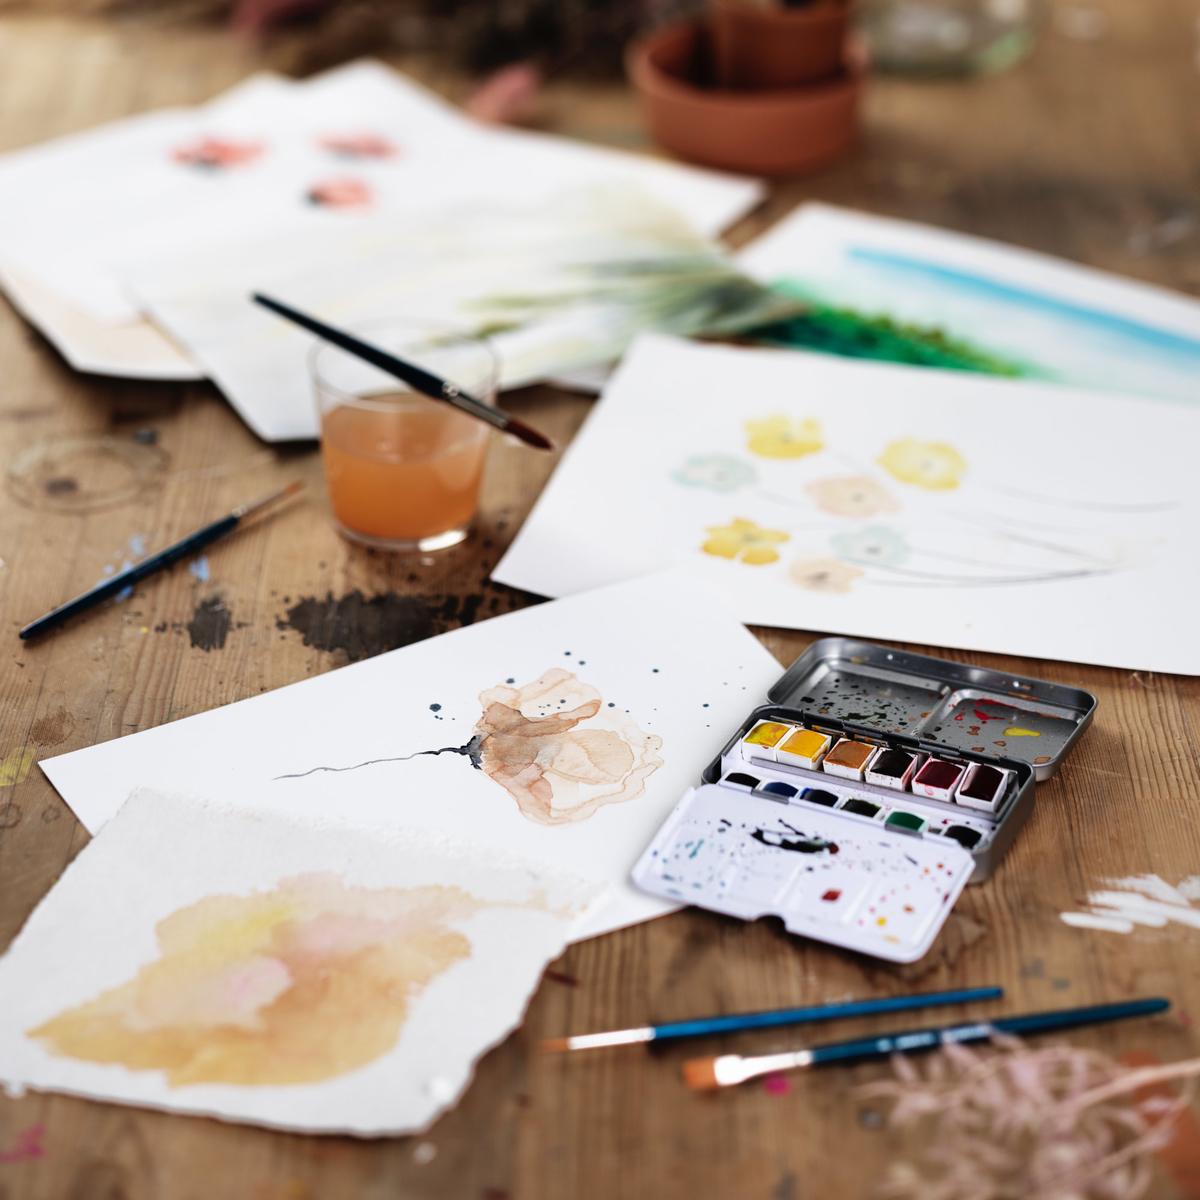 Paint watercolours with various techniques